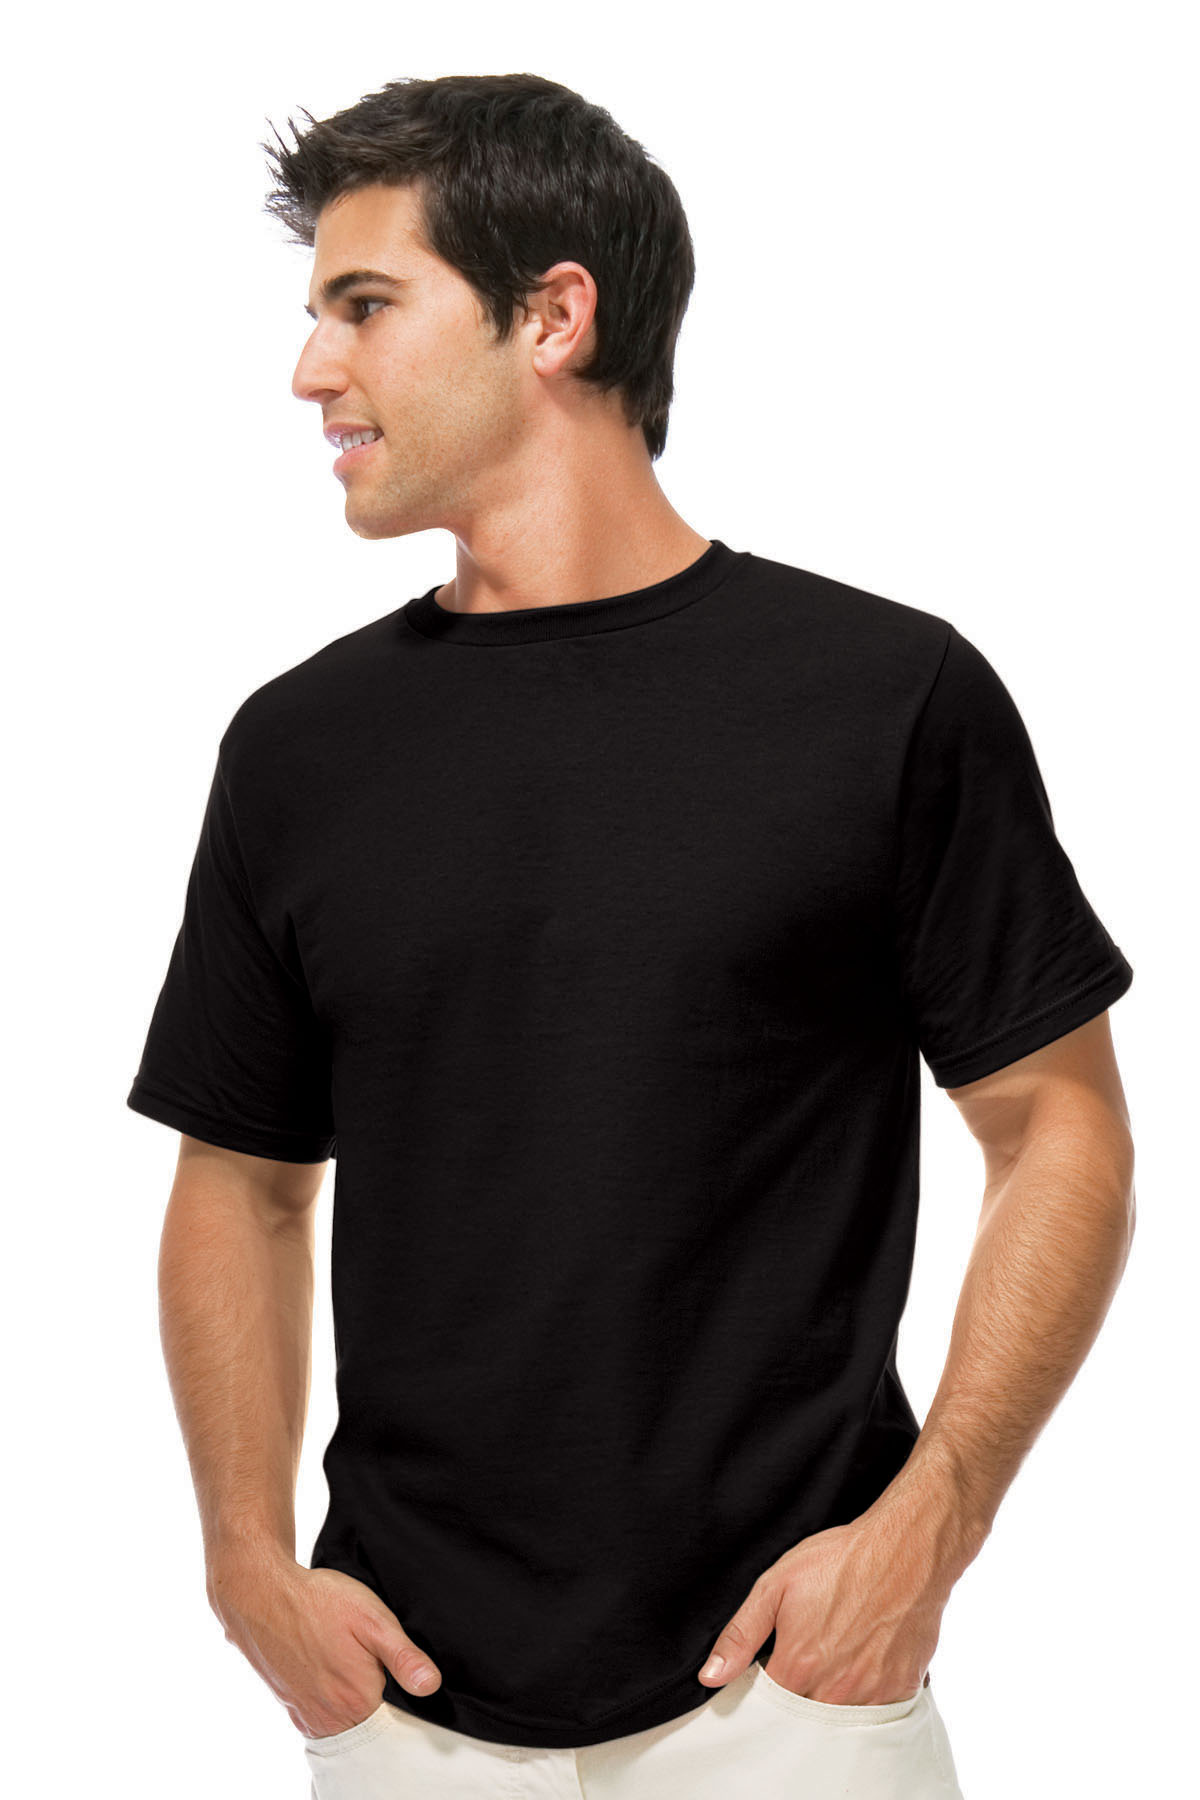 Blank Black T-Shirts Models